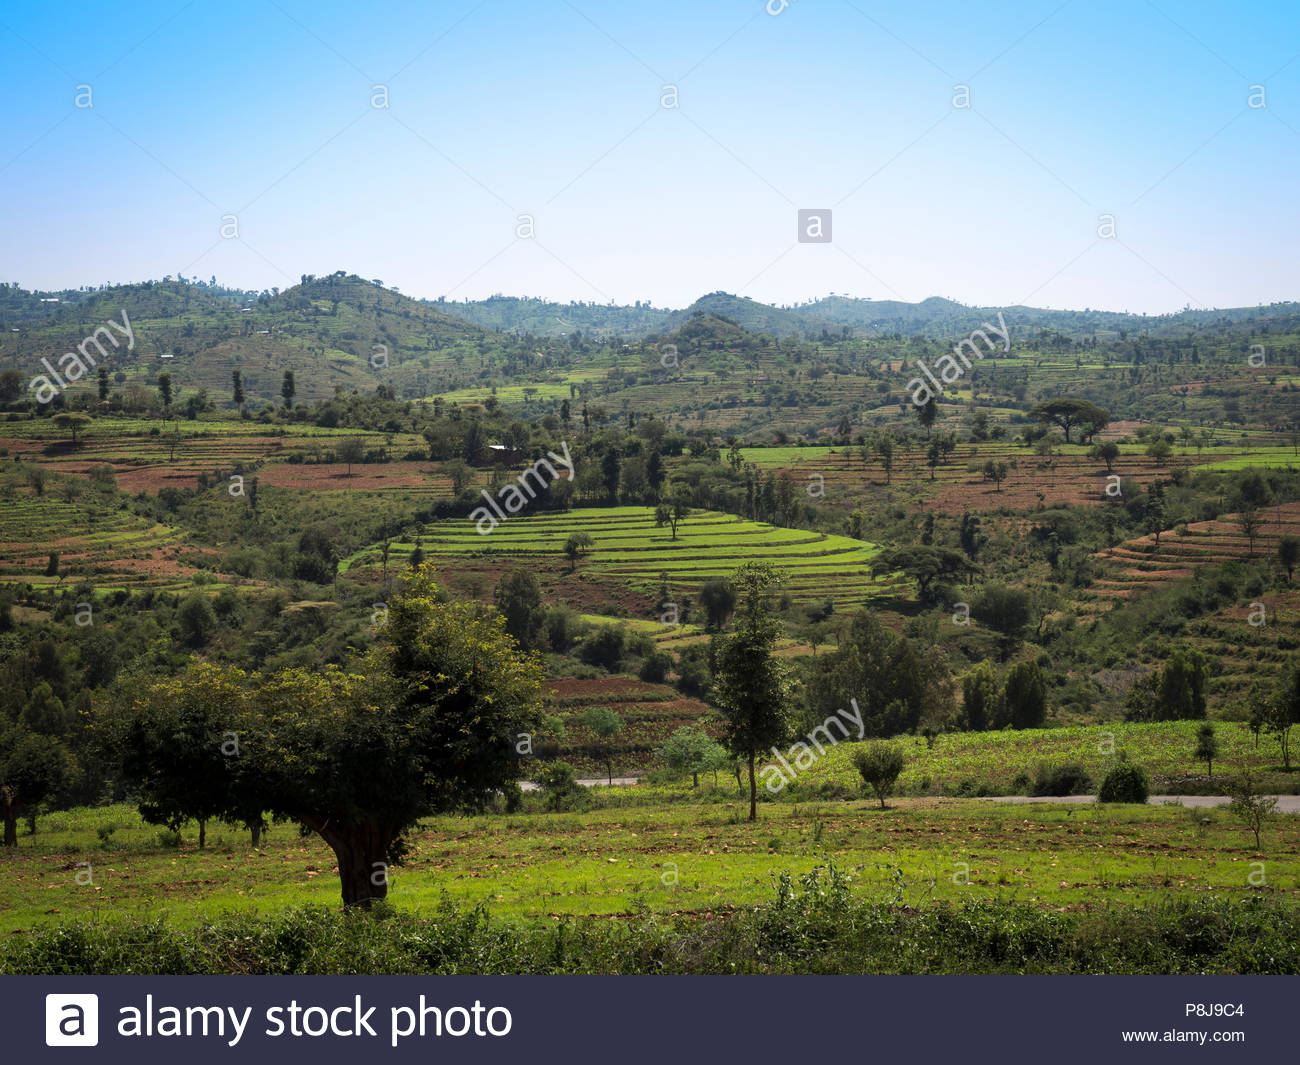 Hilly landscape with terraced fields, South Ethiopia, Ethiopia - Stock Image